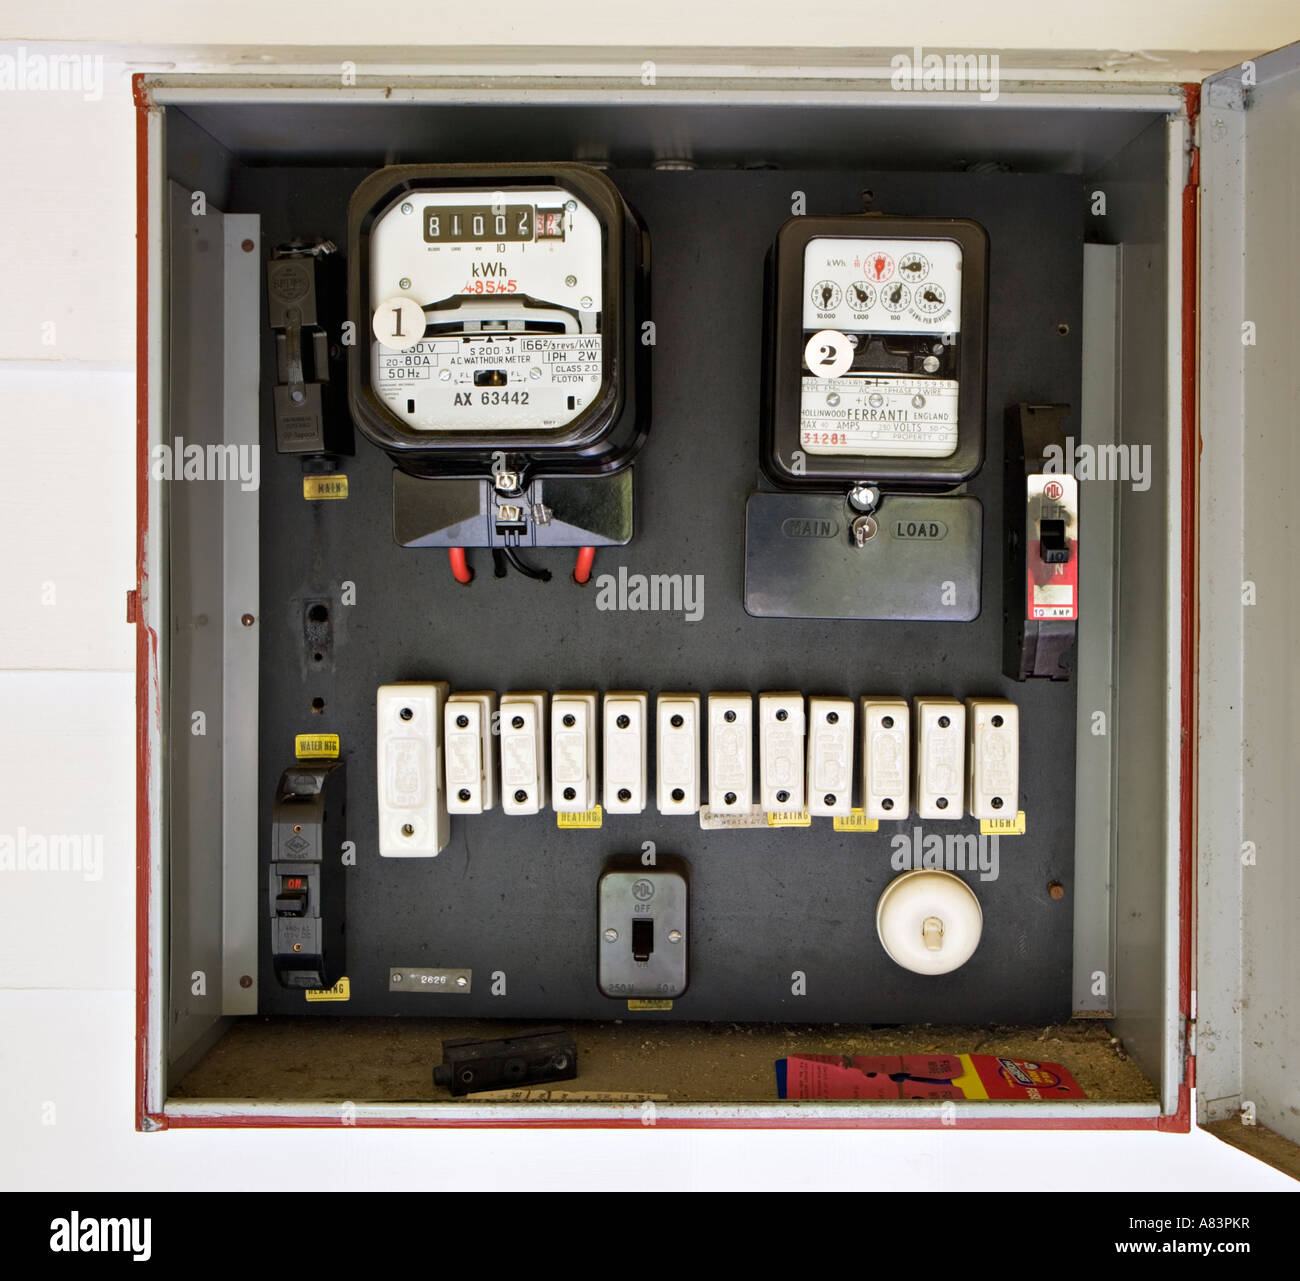 old electrical fuse box stock photos old electrical fuse box stock rh alamy com Old Electrical Fuse Boxes Home Fuse Box